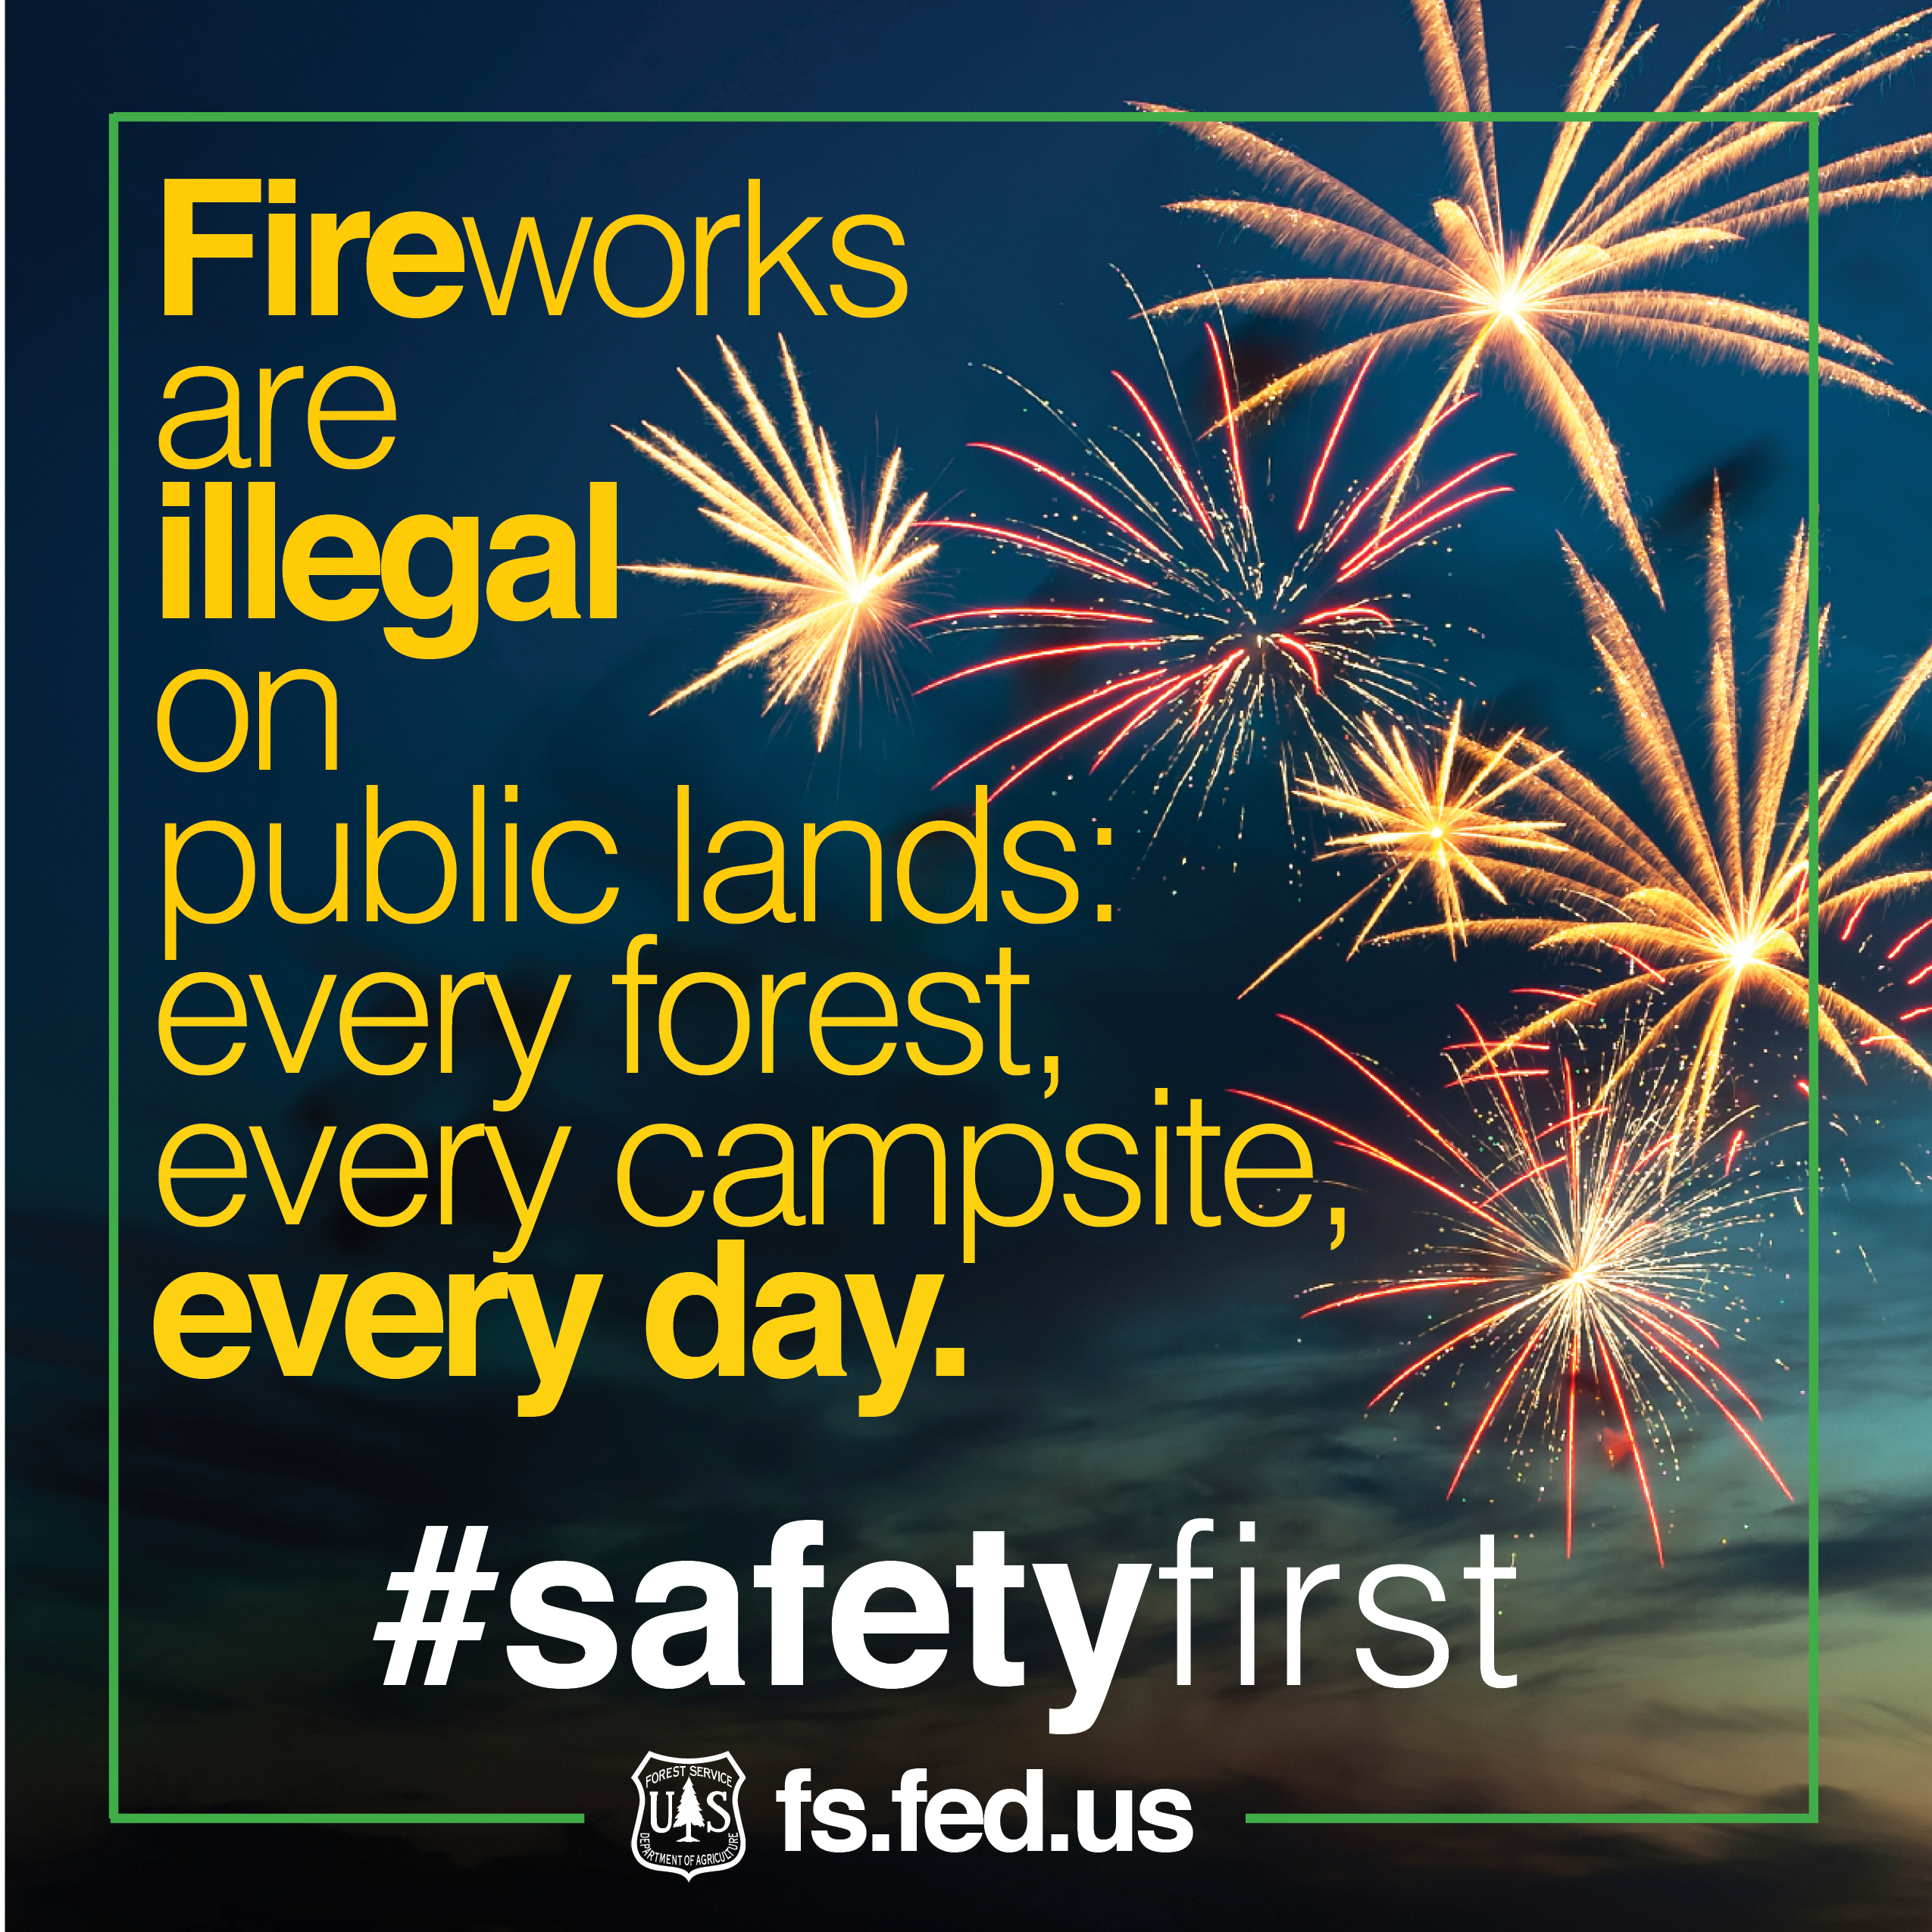 Fireworks are illegal on public lands